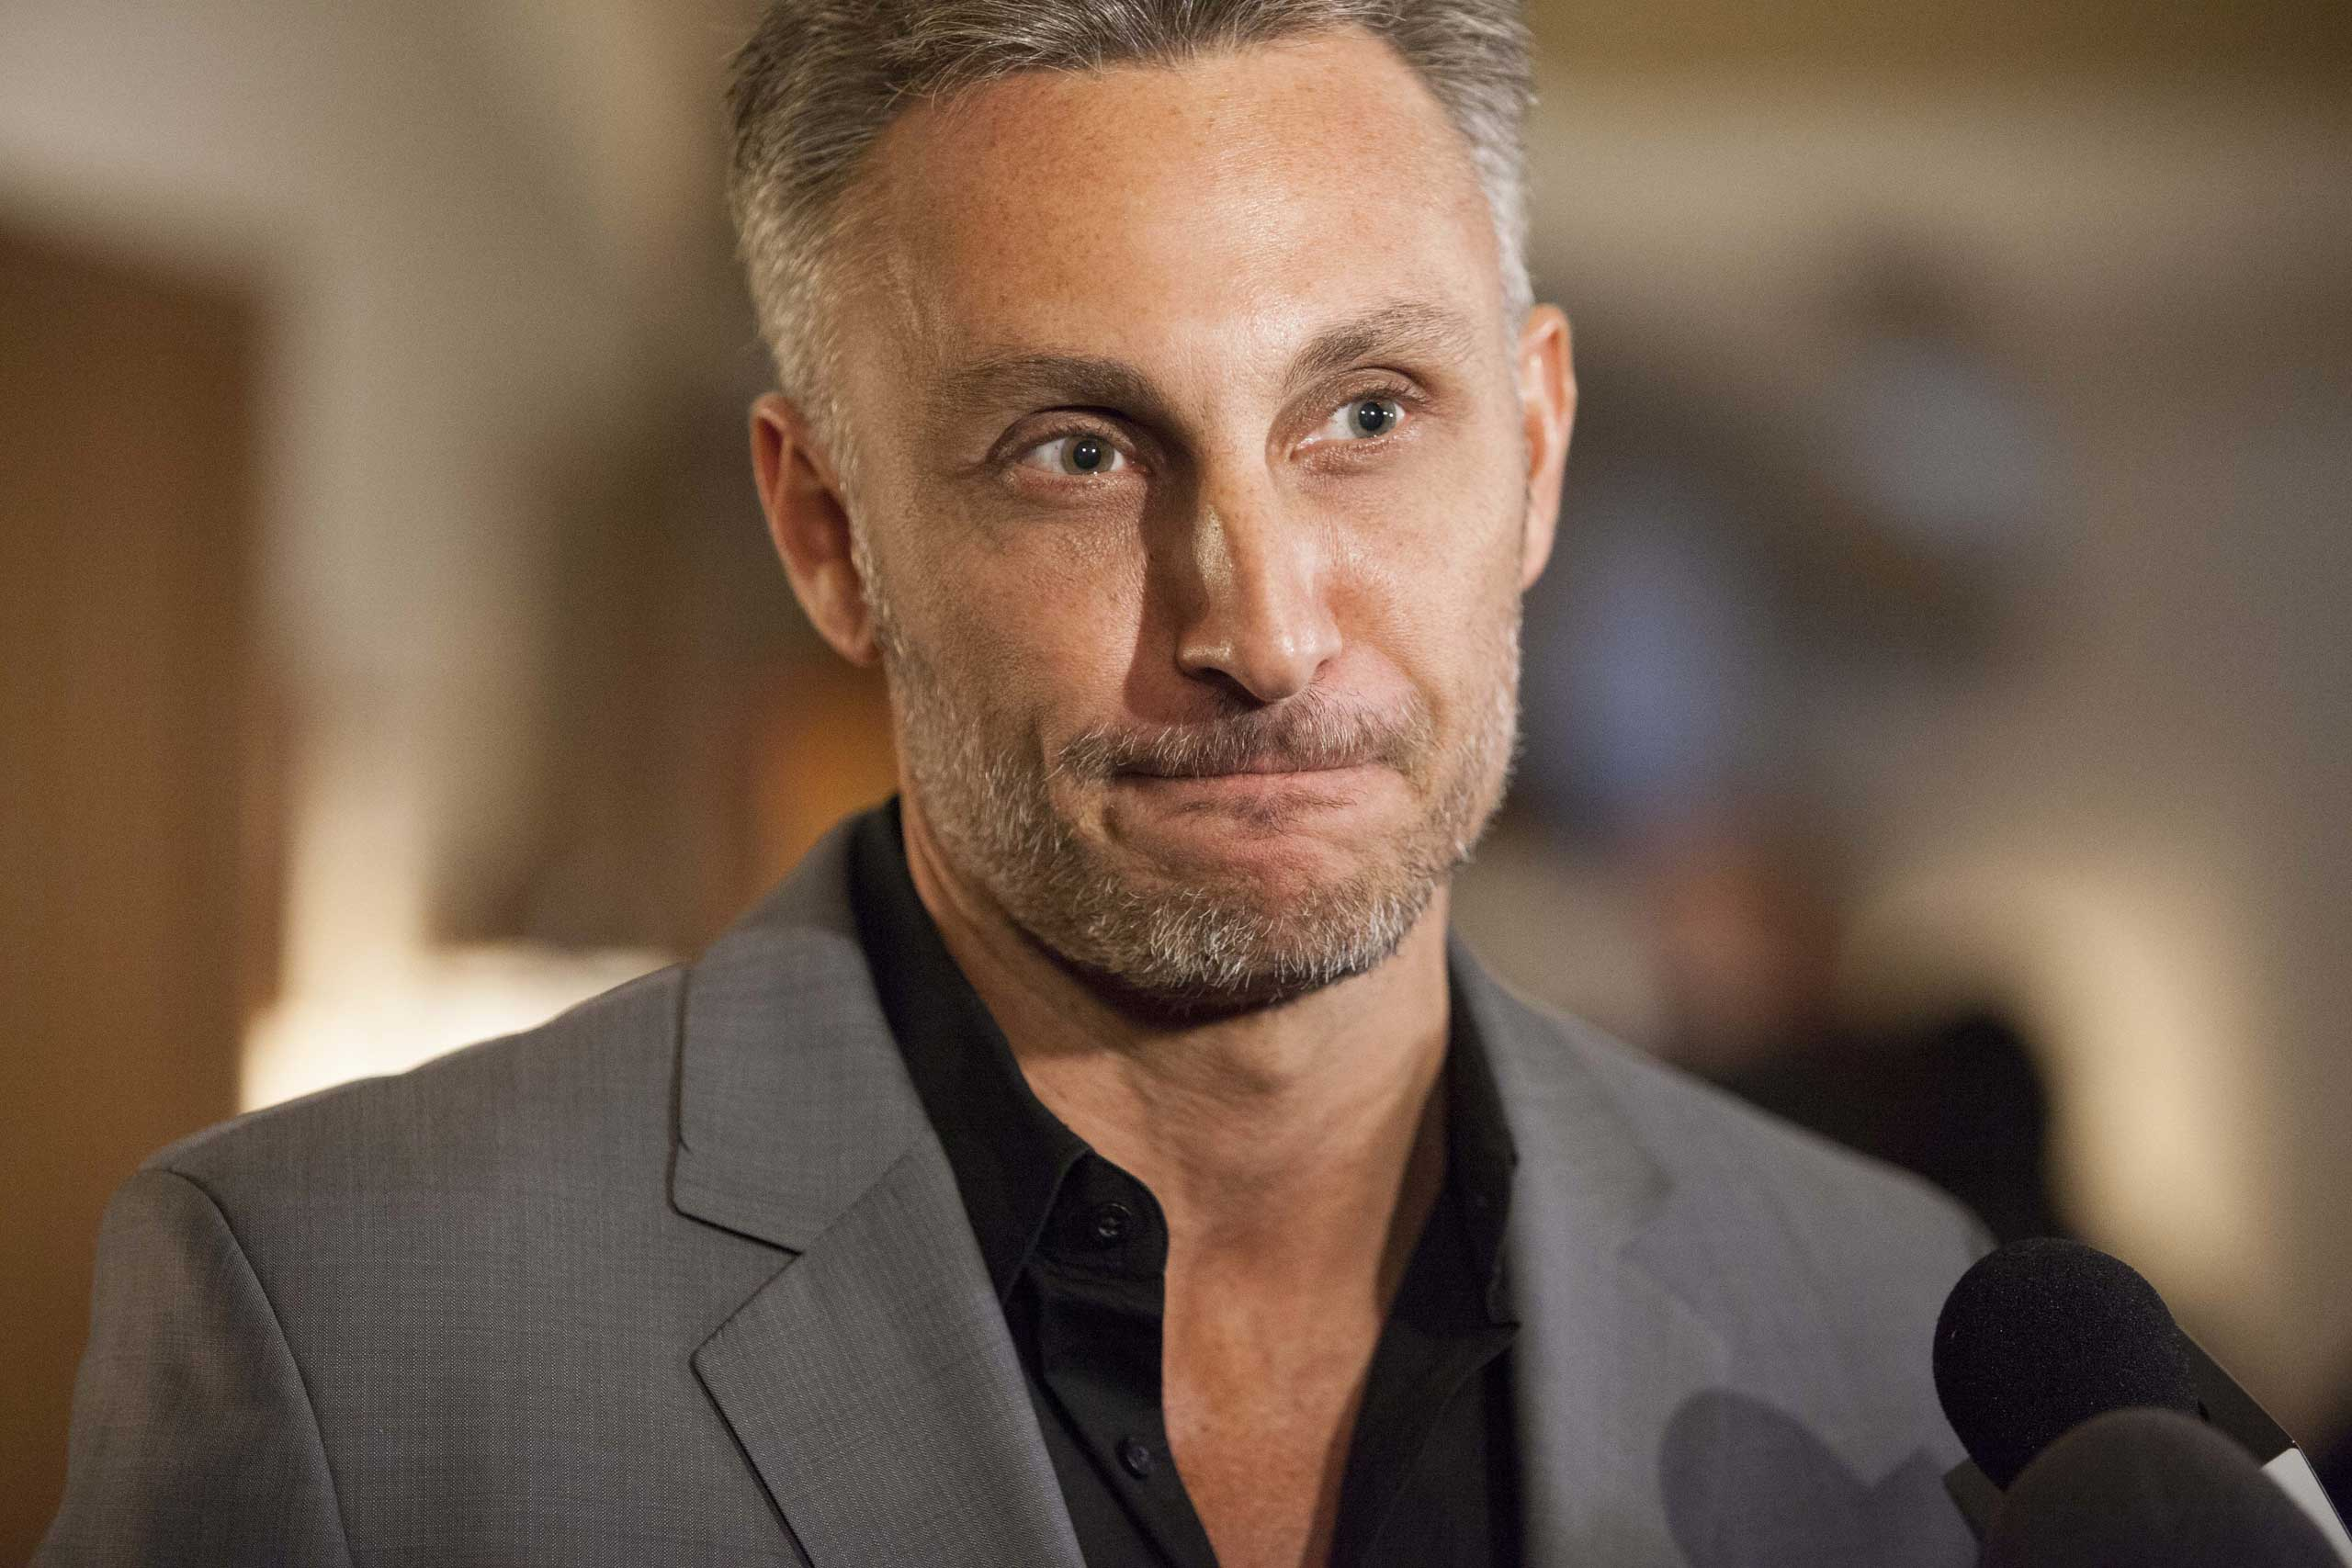 William Graham Tullian Tchividjian attends the Billy Graham birthday party on November 7, 2013 in Asheville, United States.